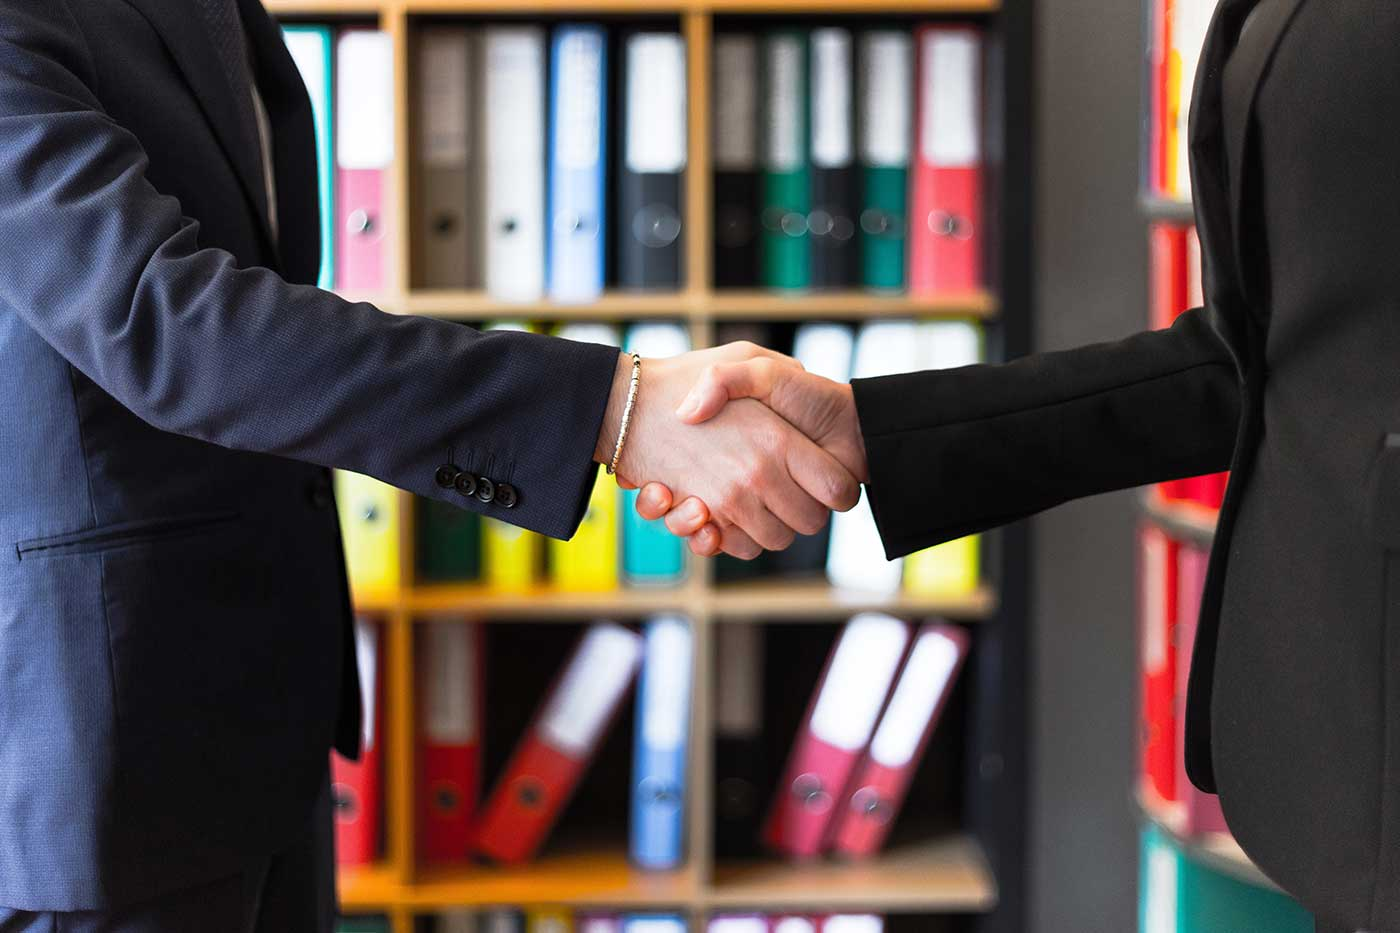 two people in suits shaking hands in front of book shelf